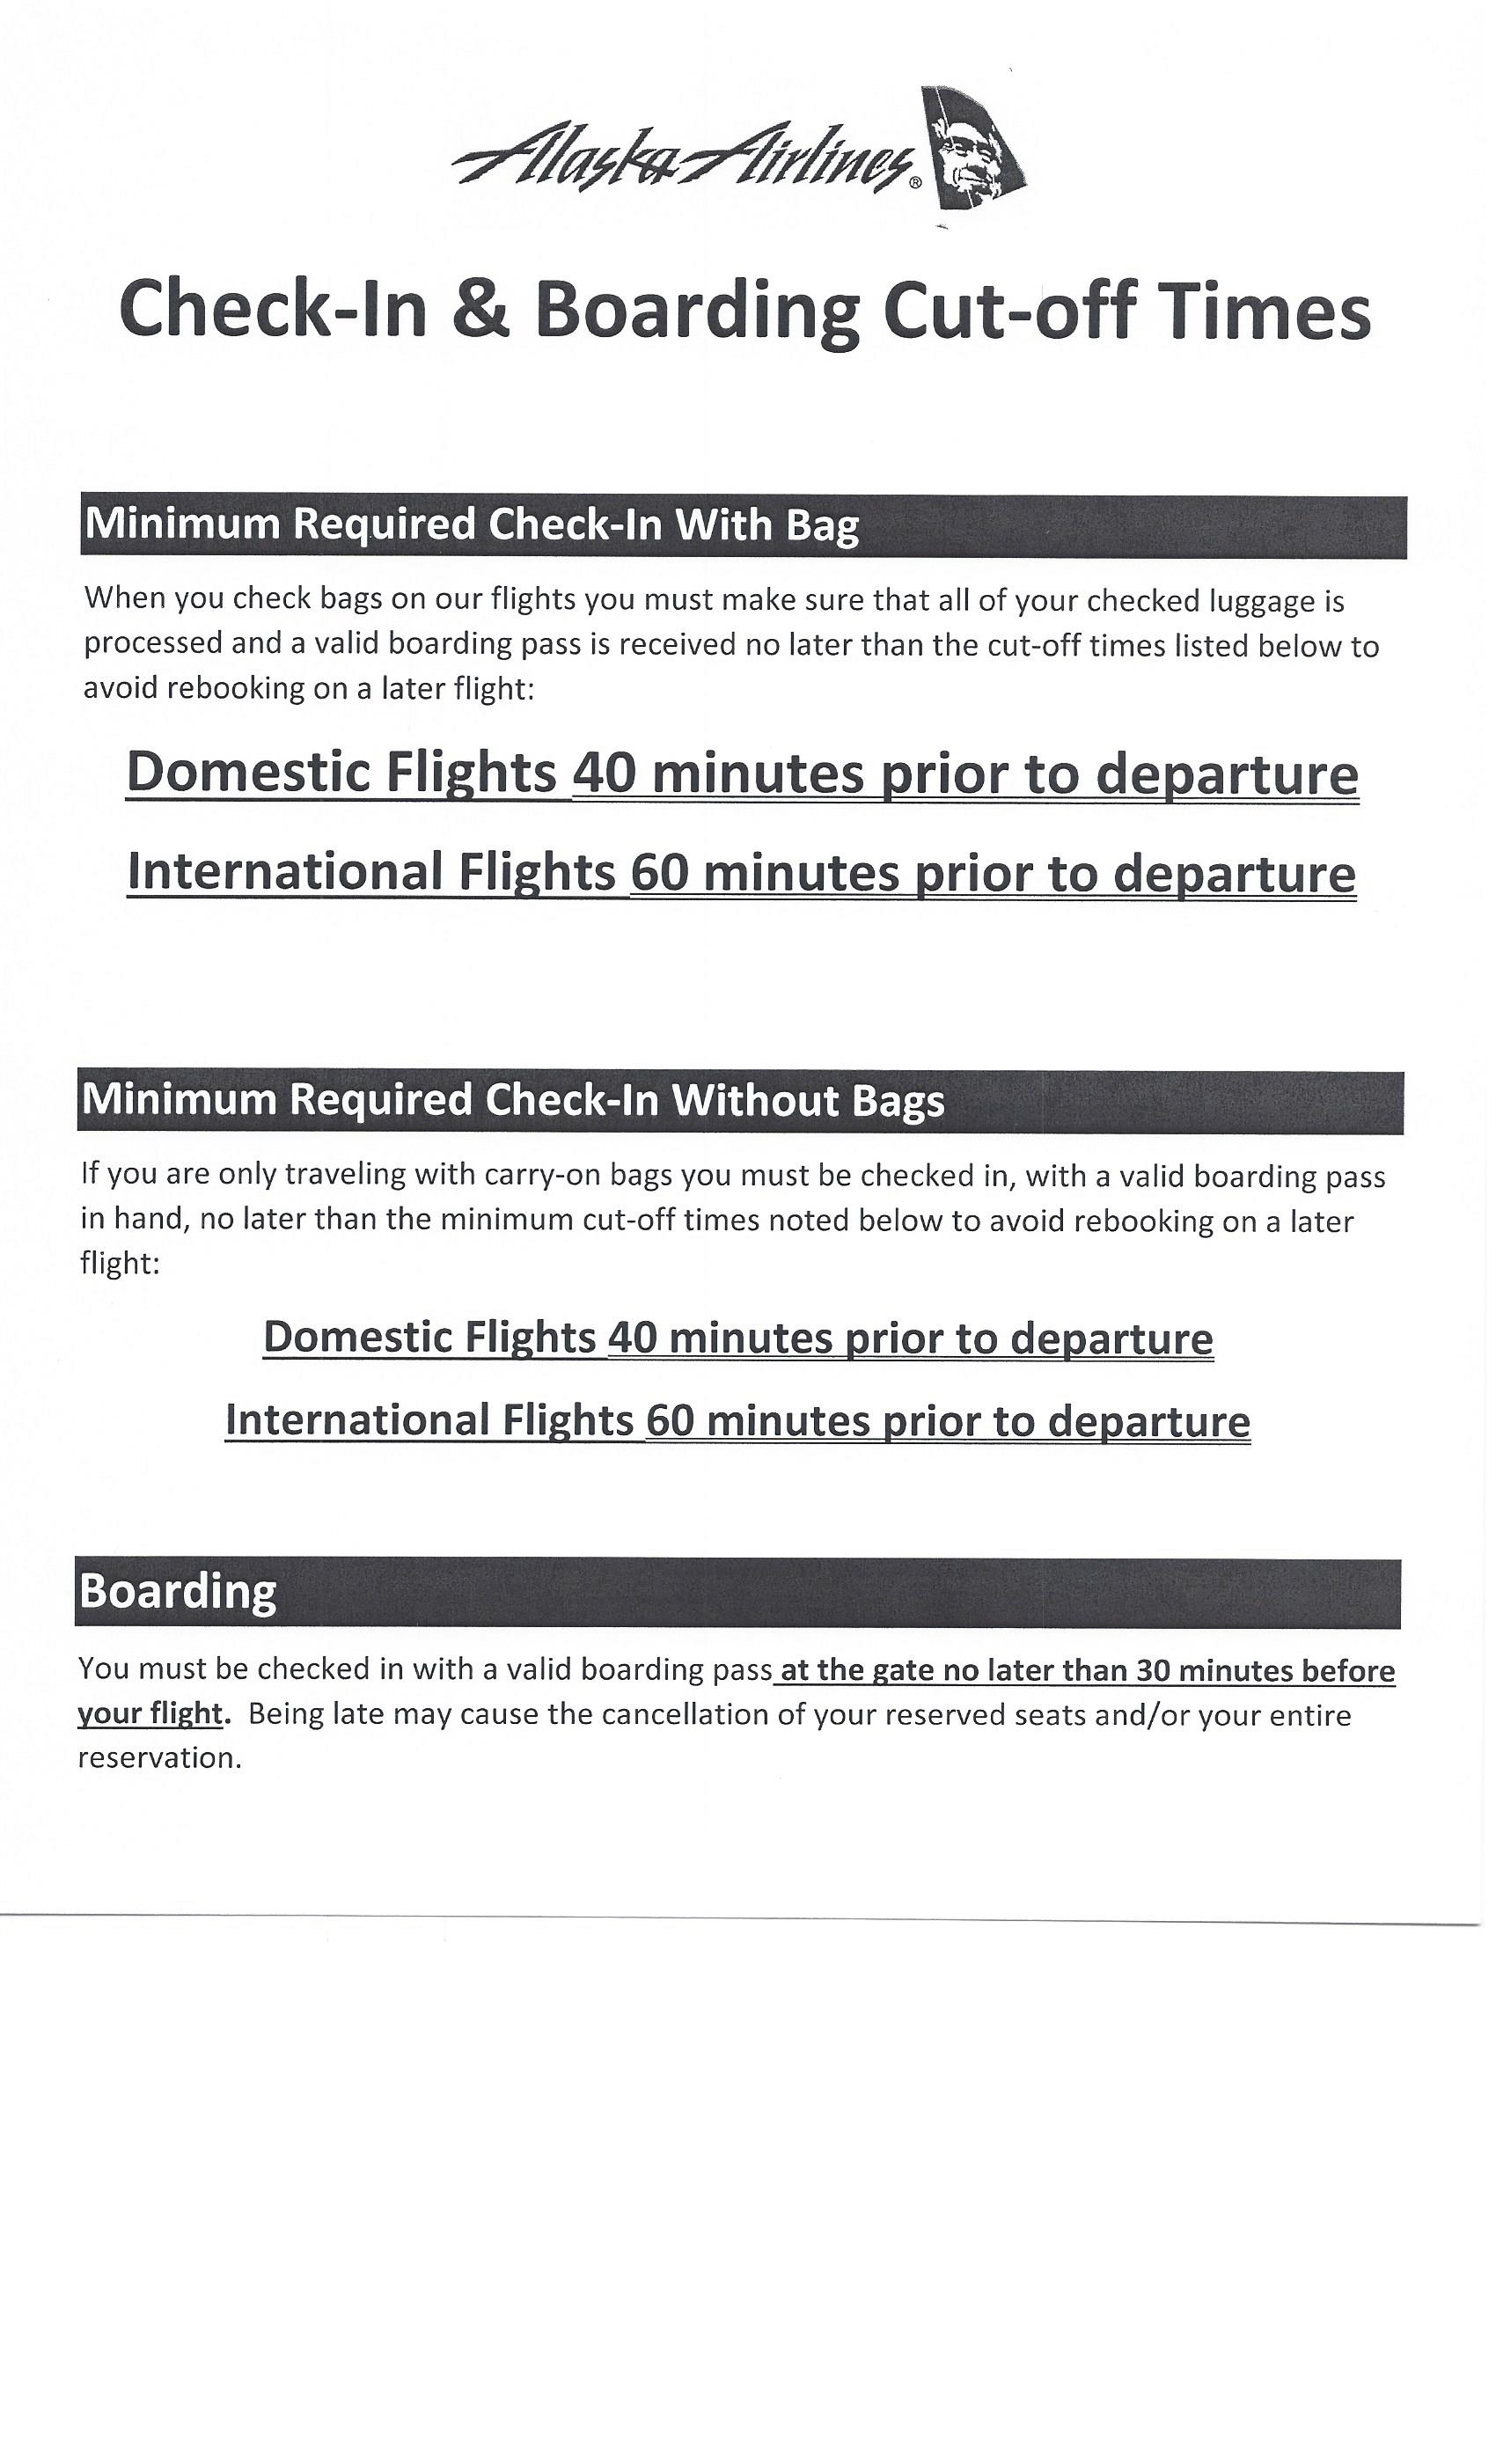 Check-In & Boarding Cut-Off Times - Pullman-Moscow Regional